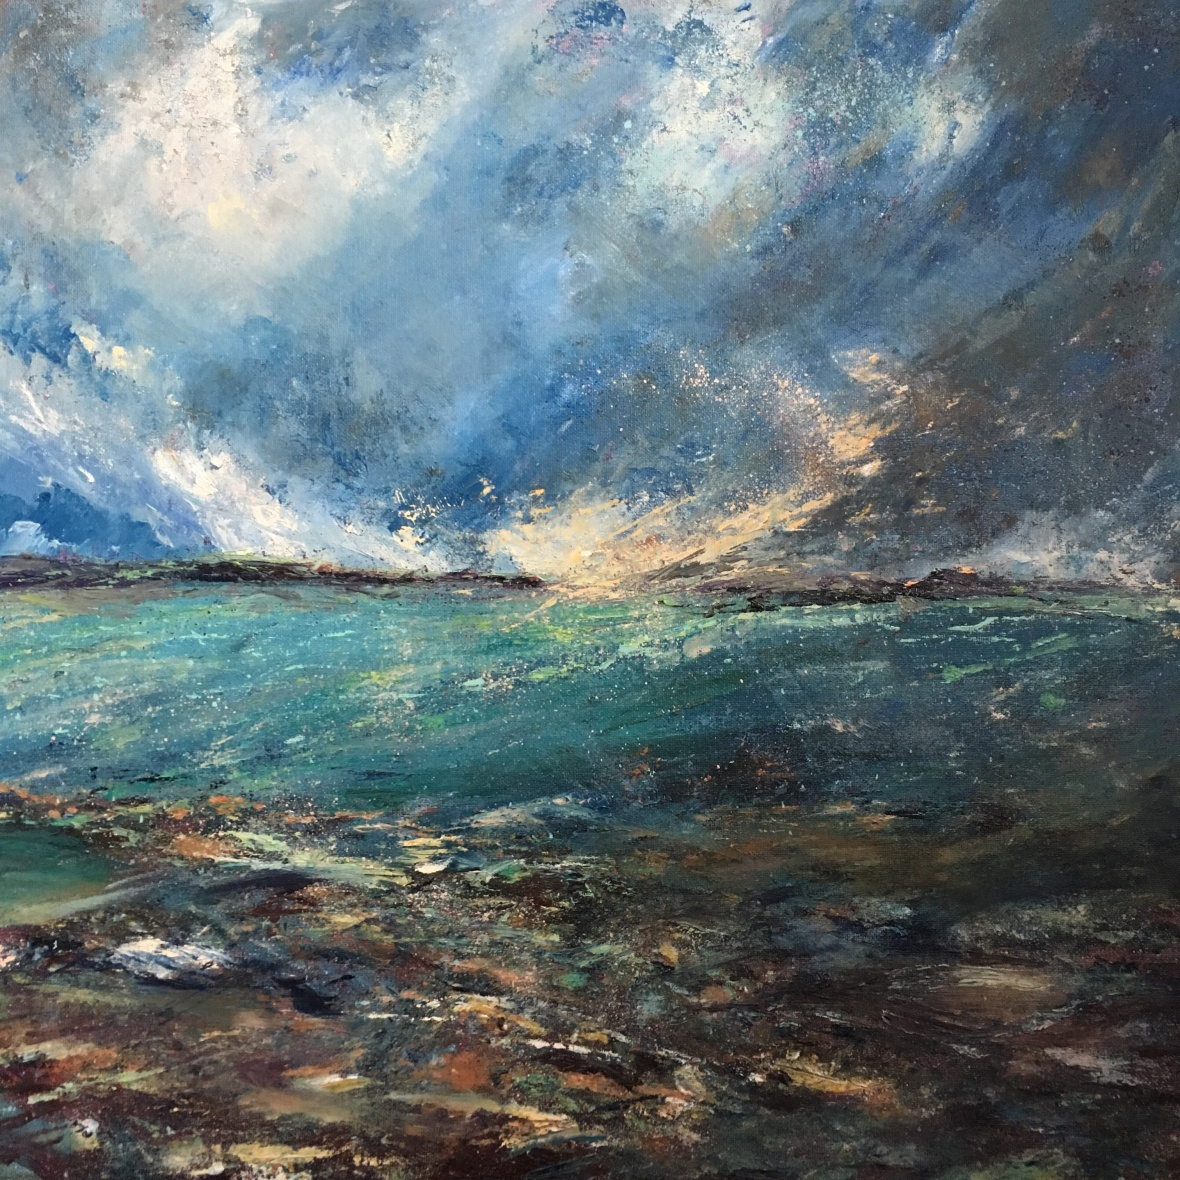 Somewhere out there seascape oil painting by ANNA cumming